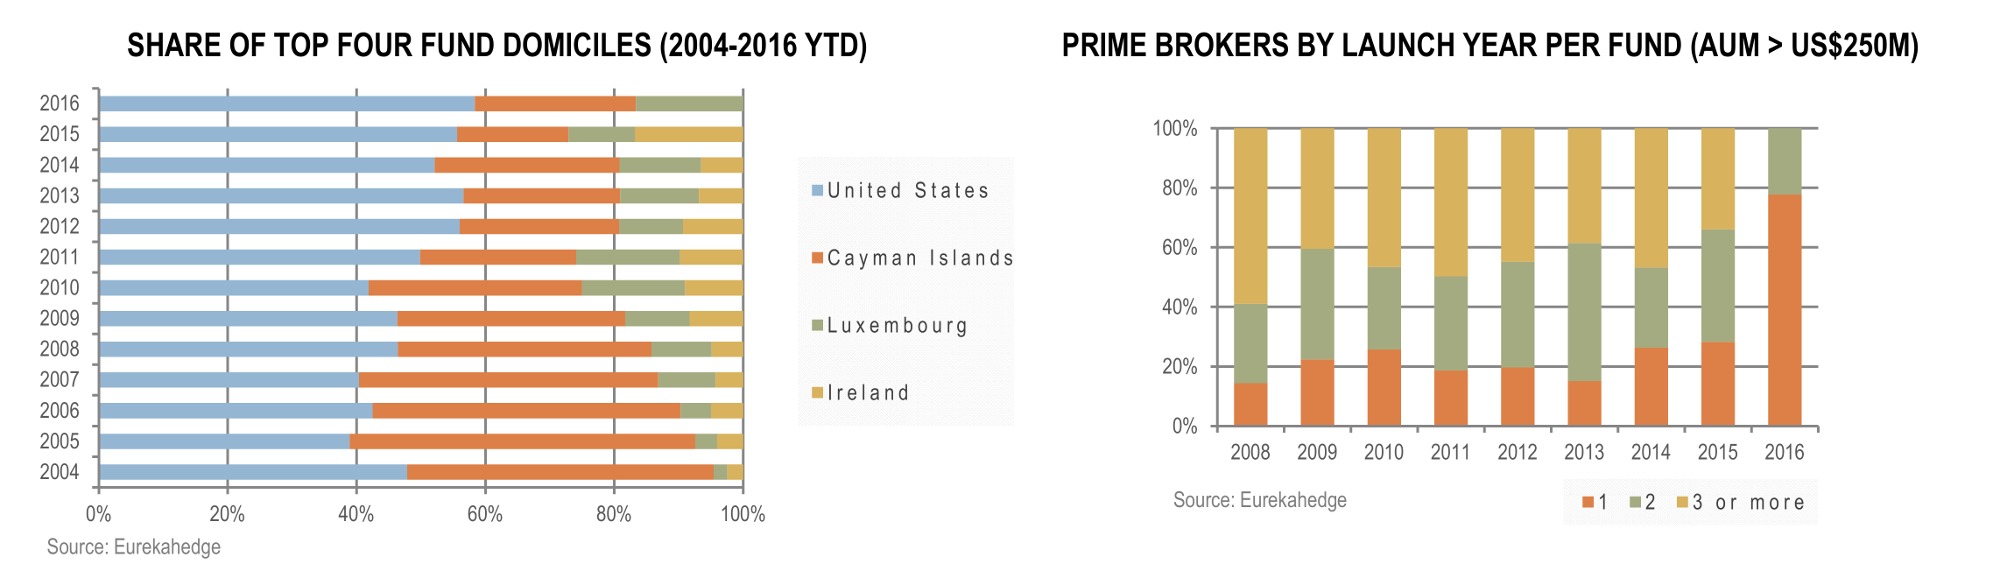 Hedge Funds April 2016 Infographic - Top four fund domiciles and prime brokers by launch year per fund AUM